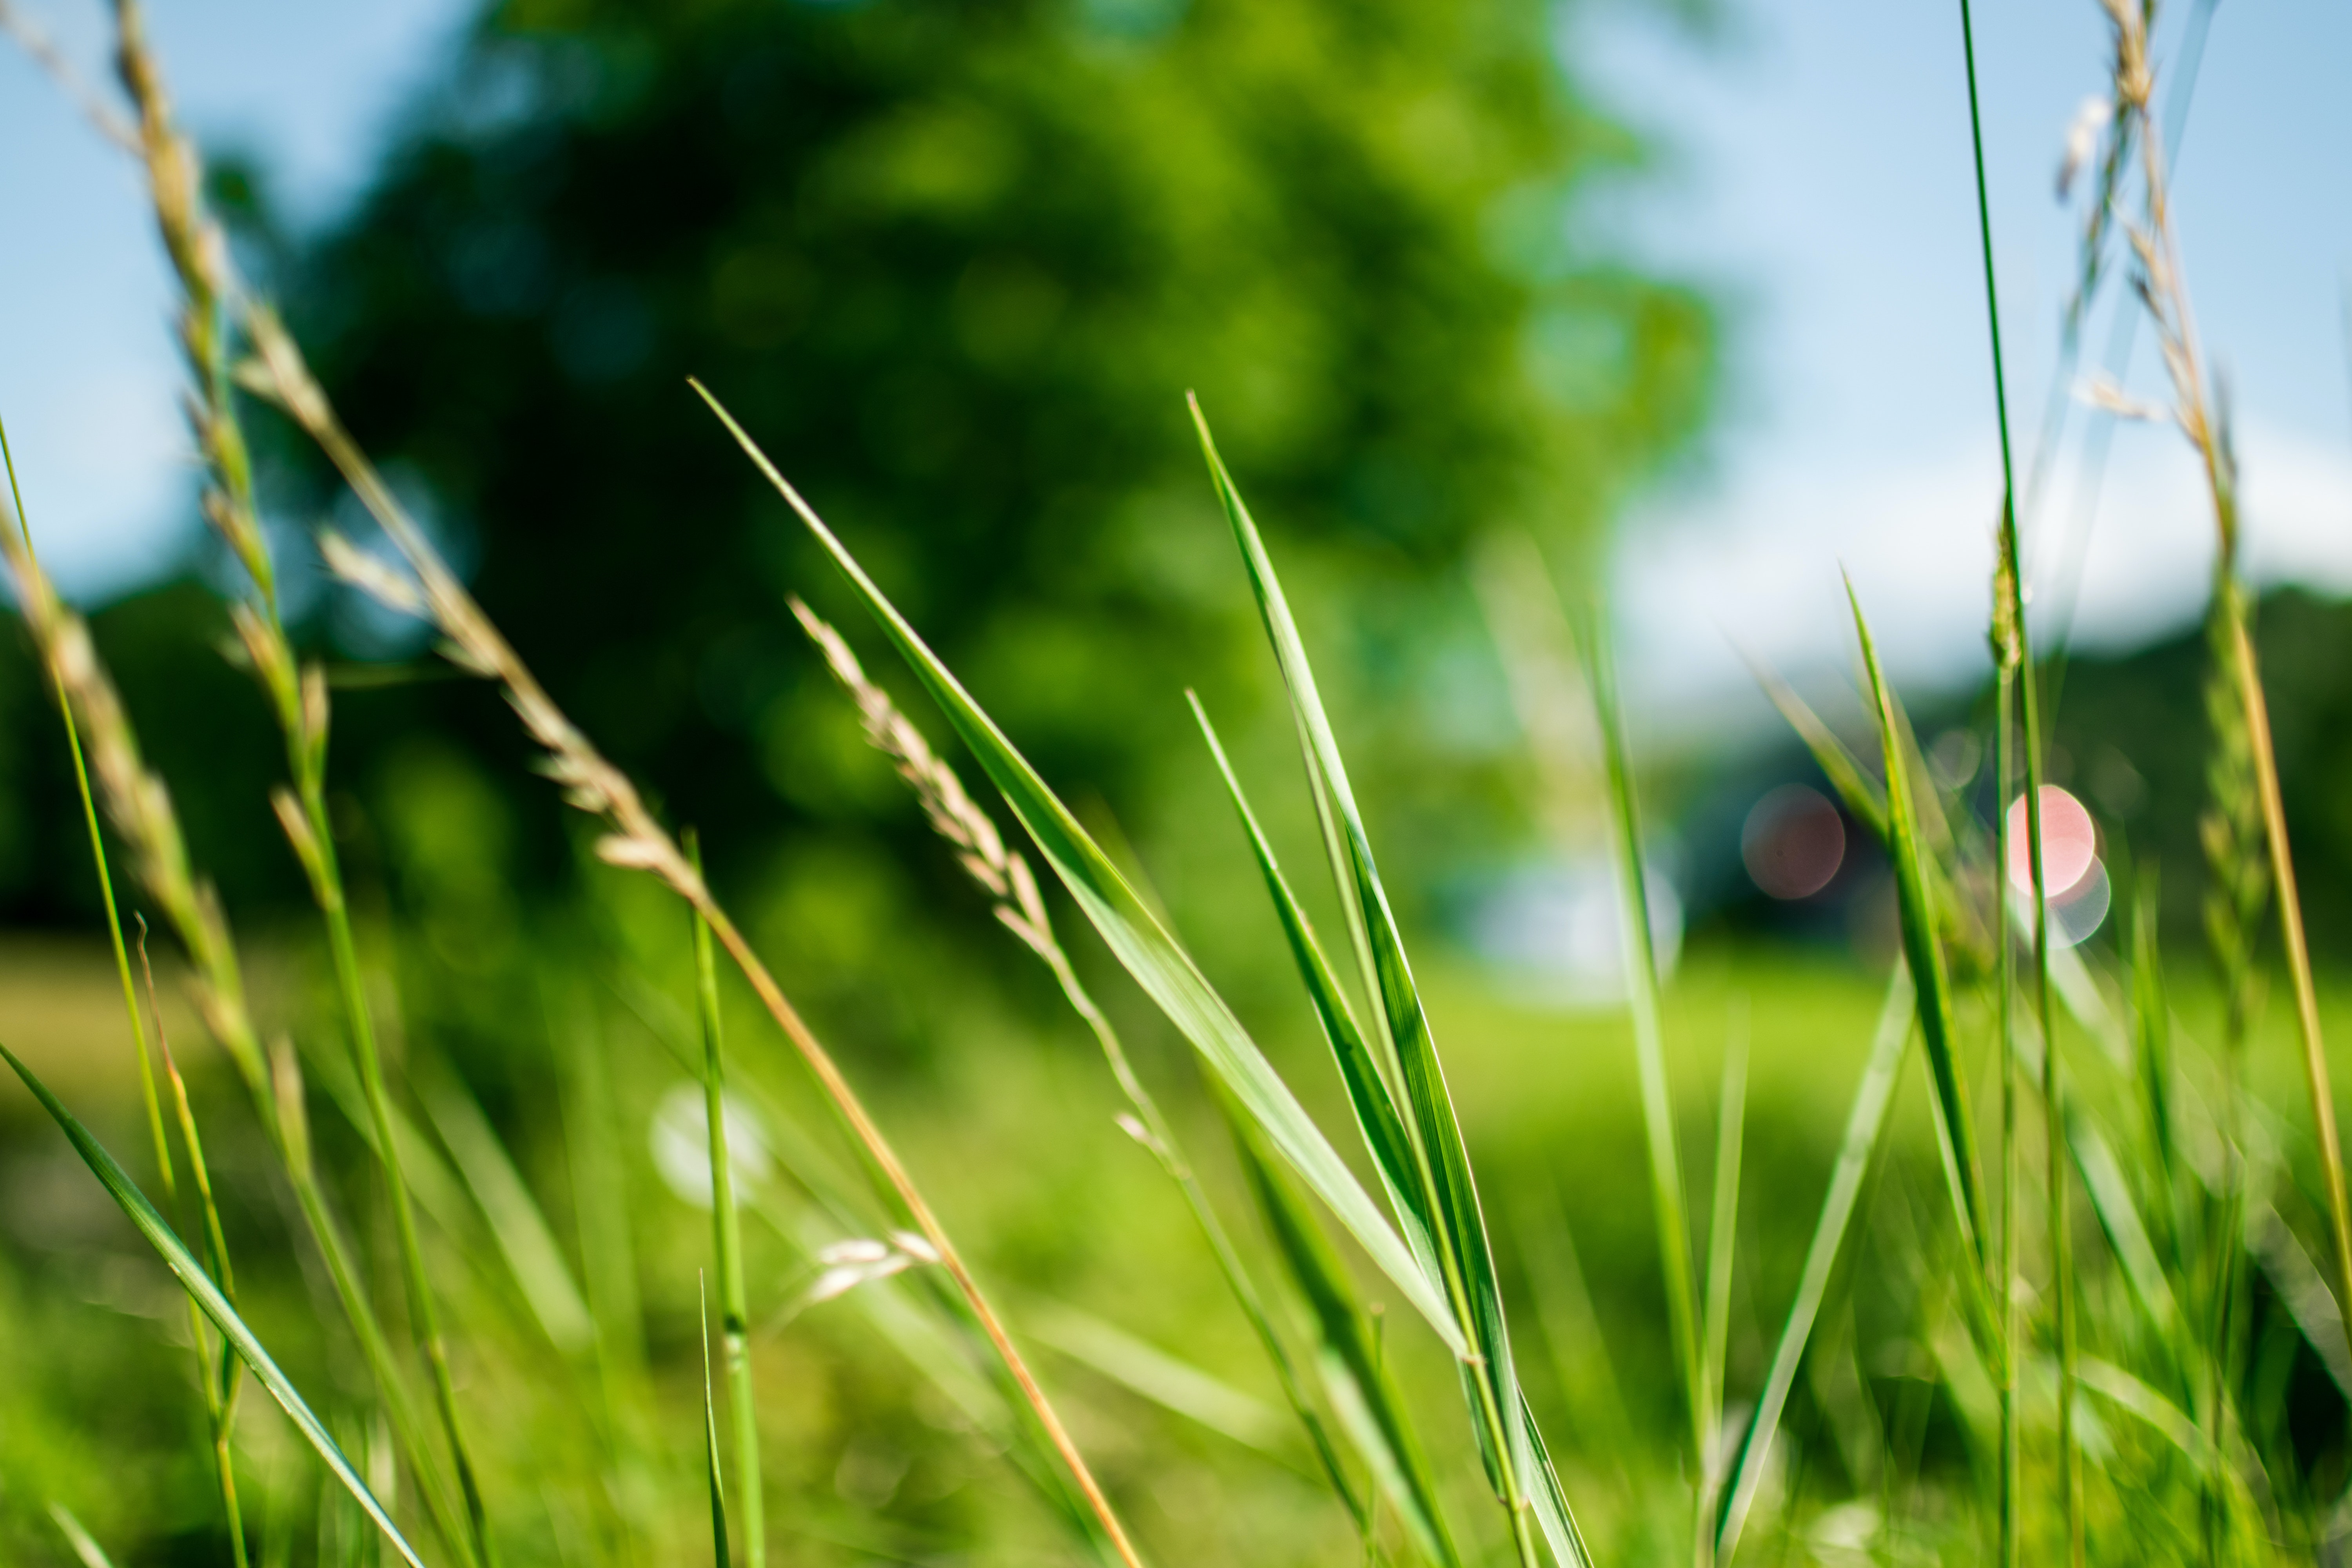 Group-Biodiversit - de quoi parle-t-on green-grass-during-daytime-in-focus-photography-167570.jpg